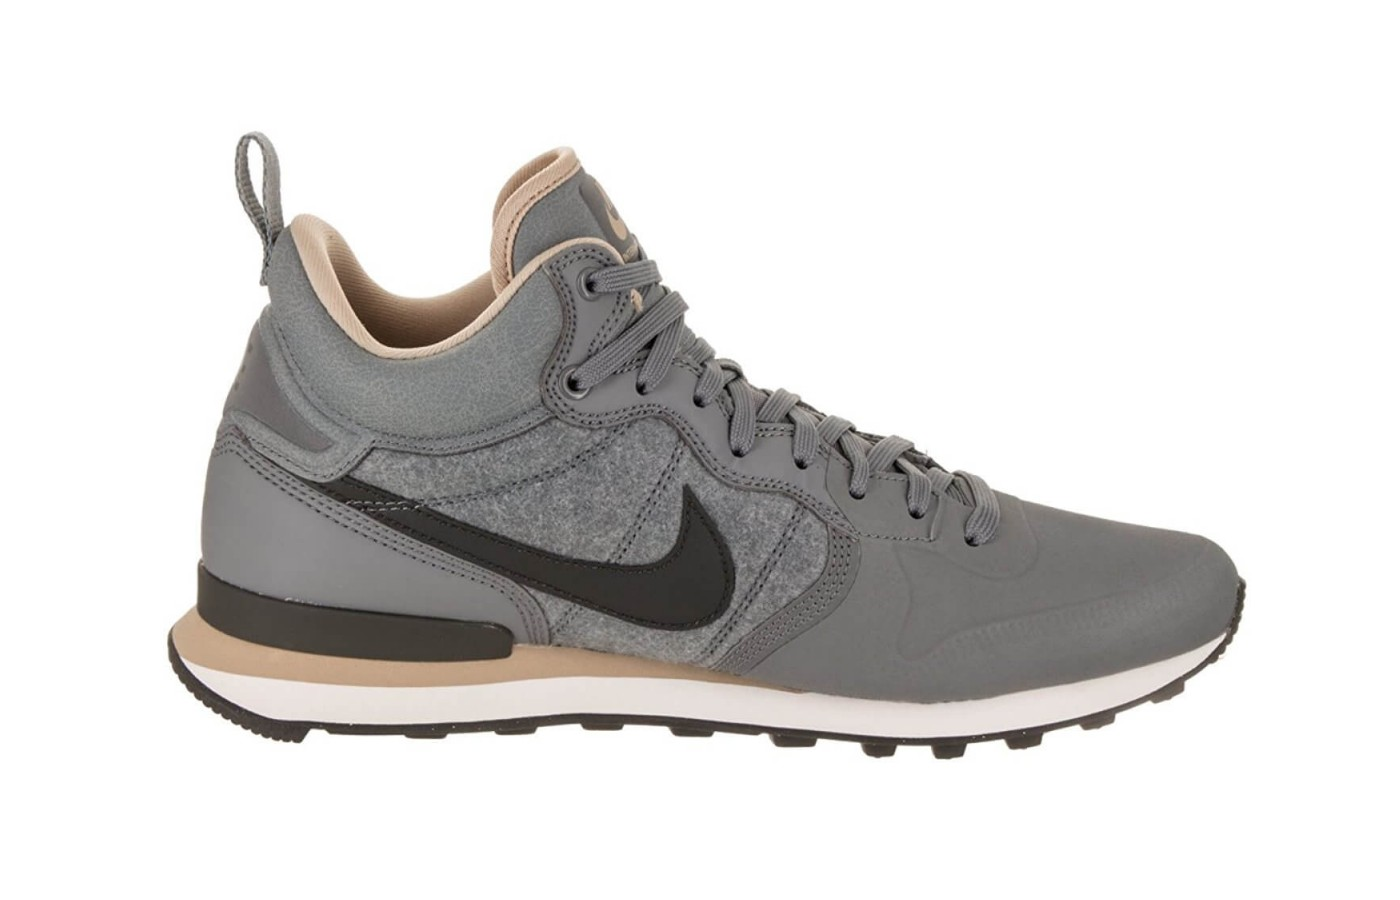 The Nike Internationalist Utility is insulated and ready for colder weather